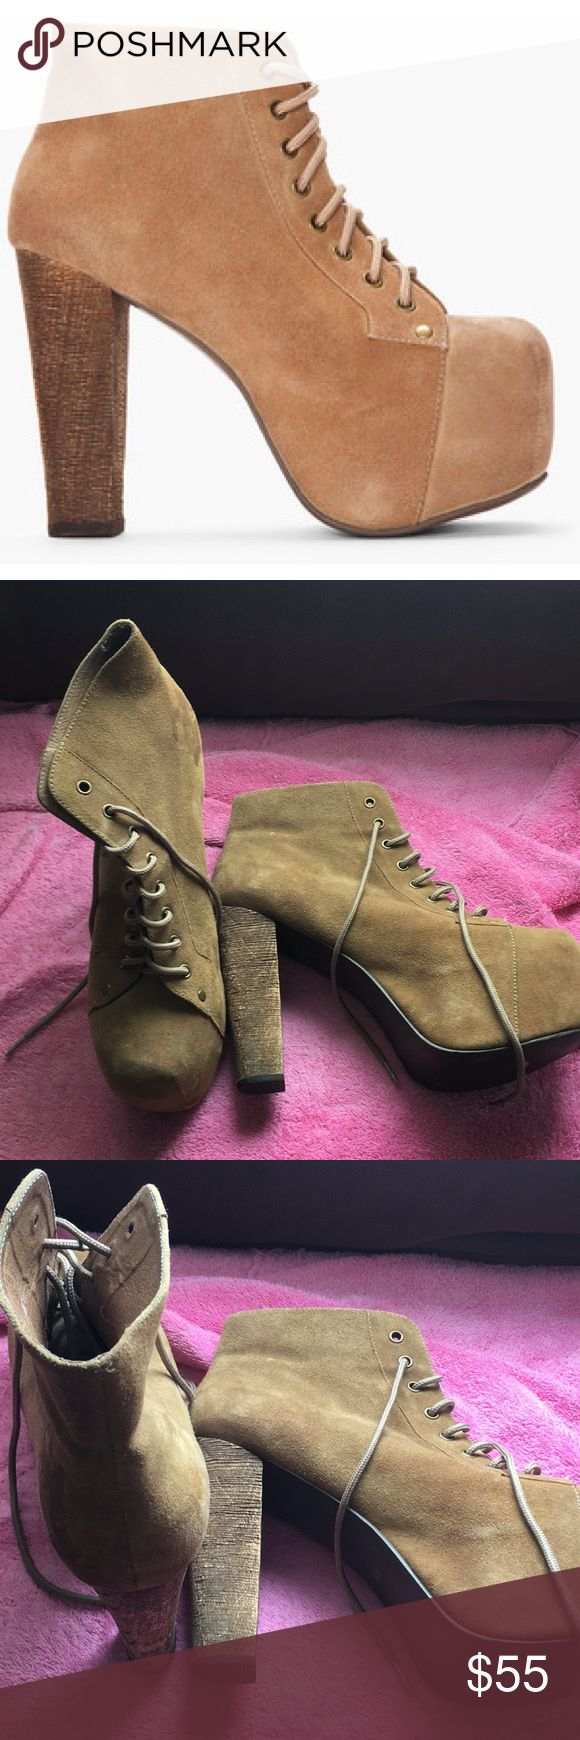 Jeffrey Campbell- Tan Lita These platform boots are too fun! Great tan color goes with so many outfits! Clean, gently worn condition.  Fits on the smaller side of 10 Jeffrey Campbell Shoes Ankle Boots & Booties